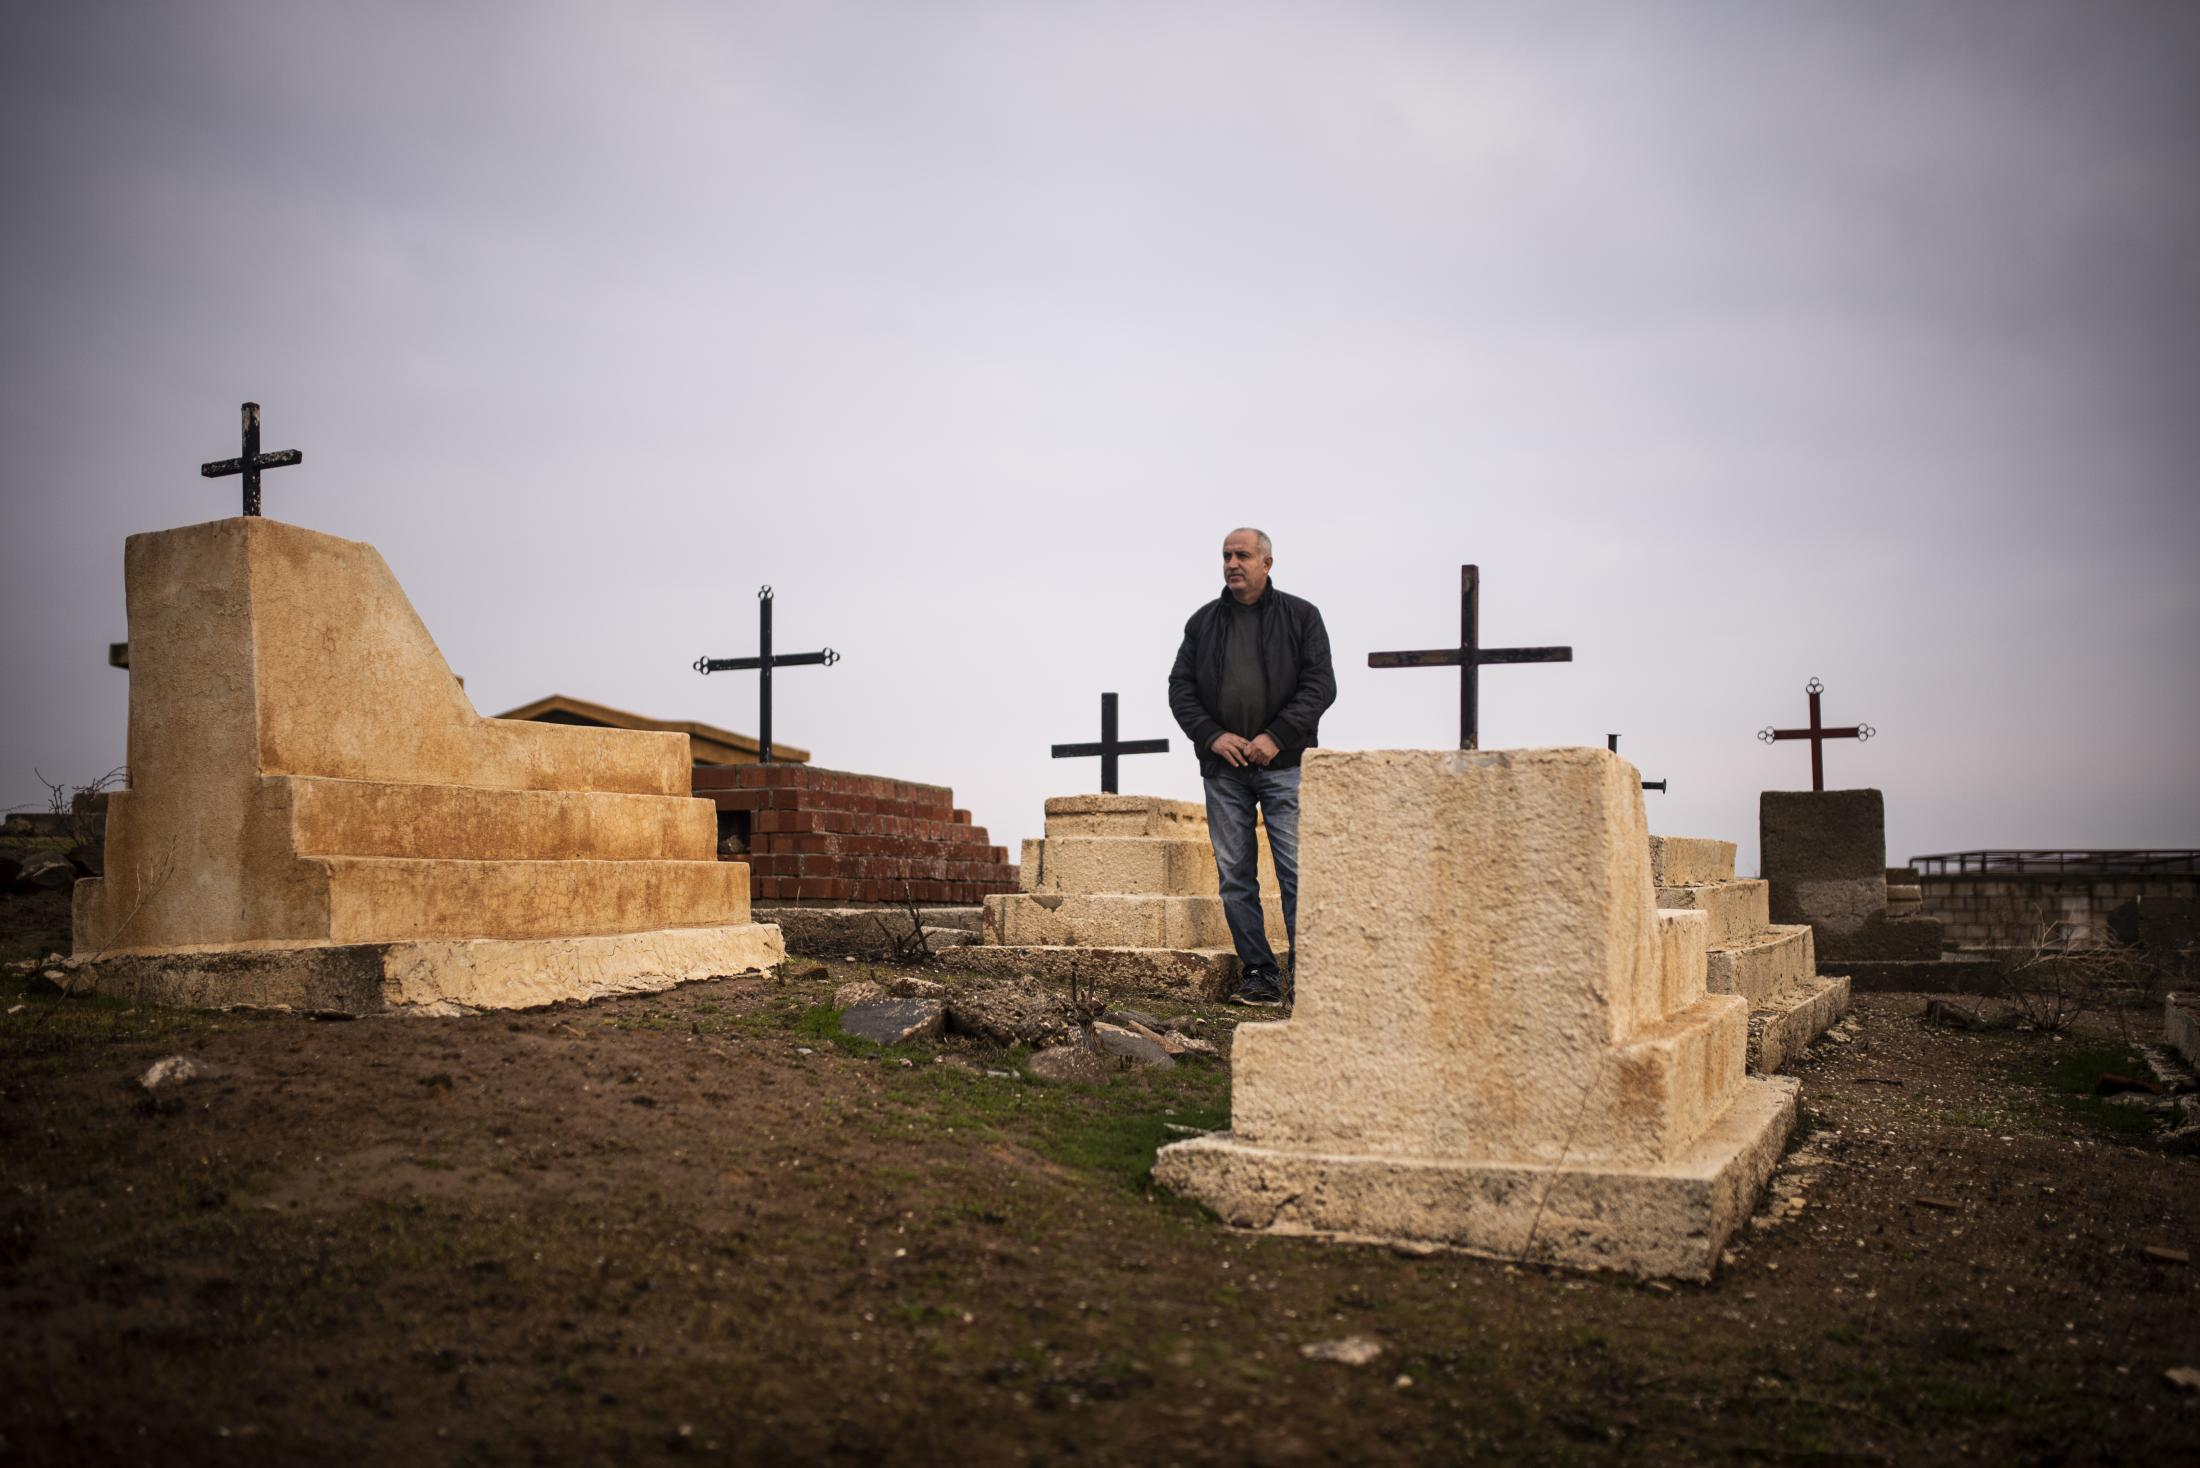 A christian inhabitant of Tel Nasri in the christian cementary of the town, near the frontline against yihadists and Turkish Army. After the withdrawal of US troops from northern Syria in October 2019, Turkey launched an offensive against the predominantly Kurdish areas in the northeast of the country along Islamist forces. Calls for war crimes investigations into the conduct of Ankara-backed militias are mounting ever since. (Andoni Lubaki / Euskal Fondoa)